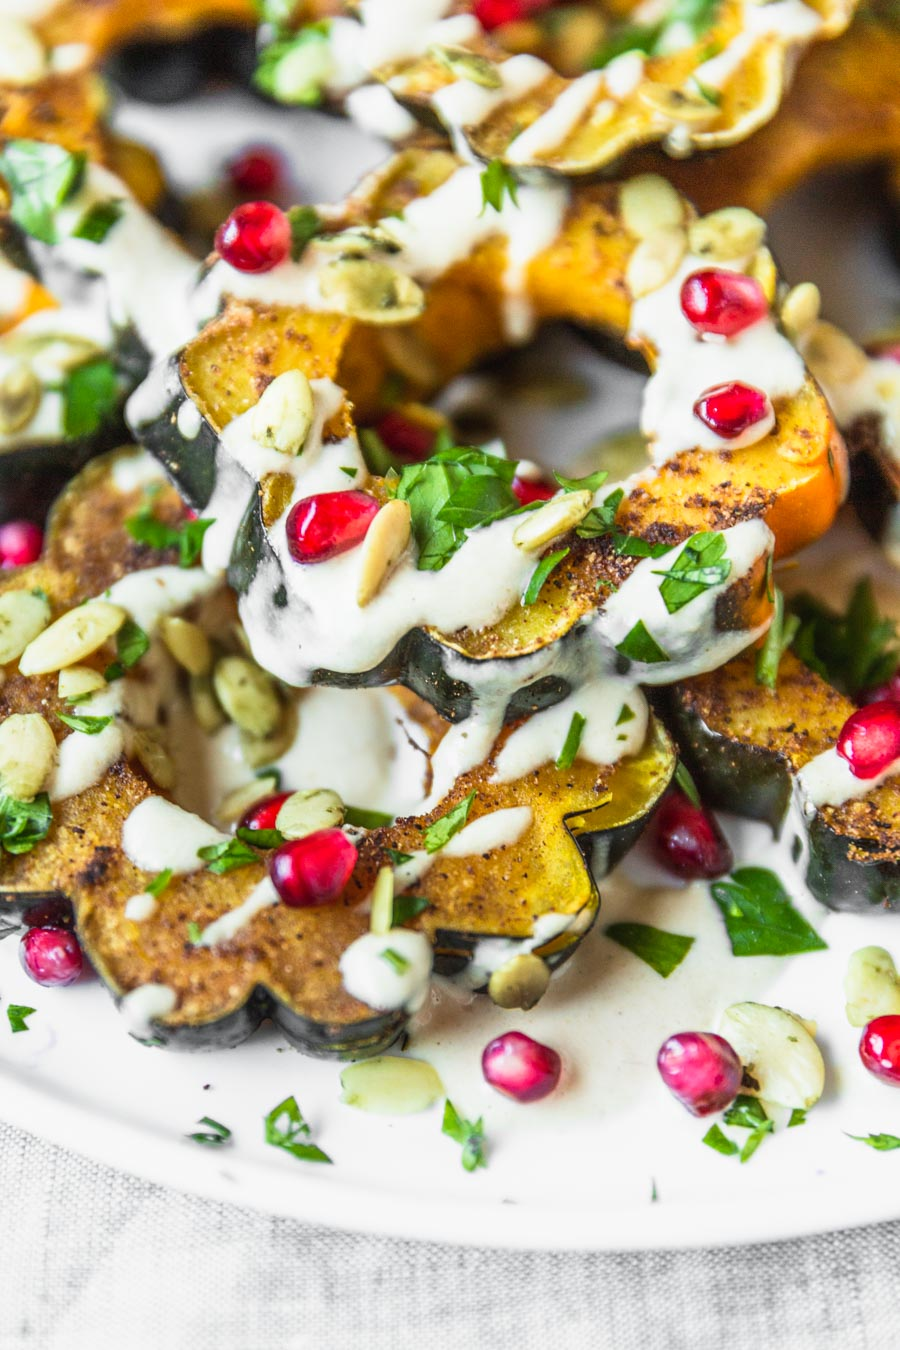 Garam Masala Roasted Acorn Squash recipe from The Ultimate Vegan Cookbook, Photo by Kari of Beautiful Ingredient. #vegan #gluten-free #thanksgiving #holiday #squash #pomegranate #tahini